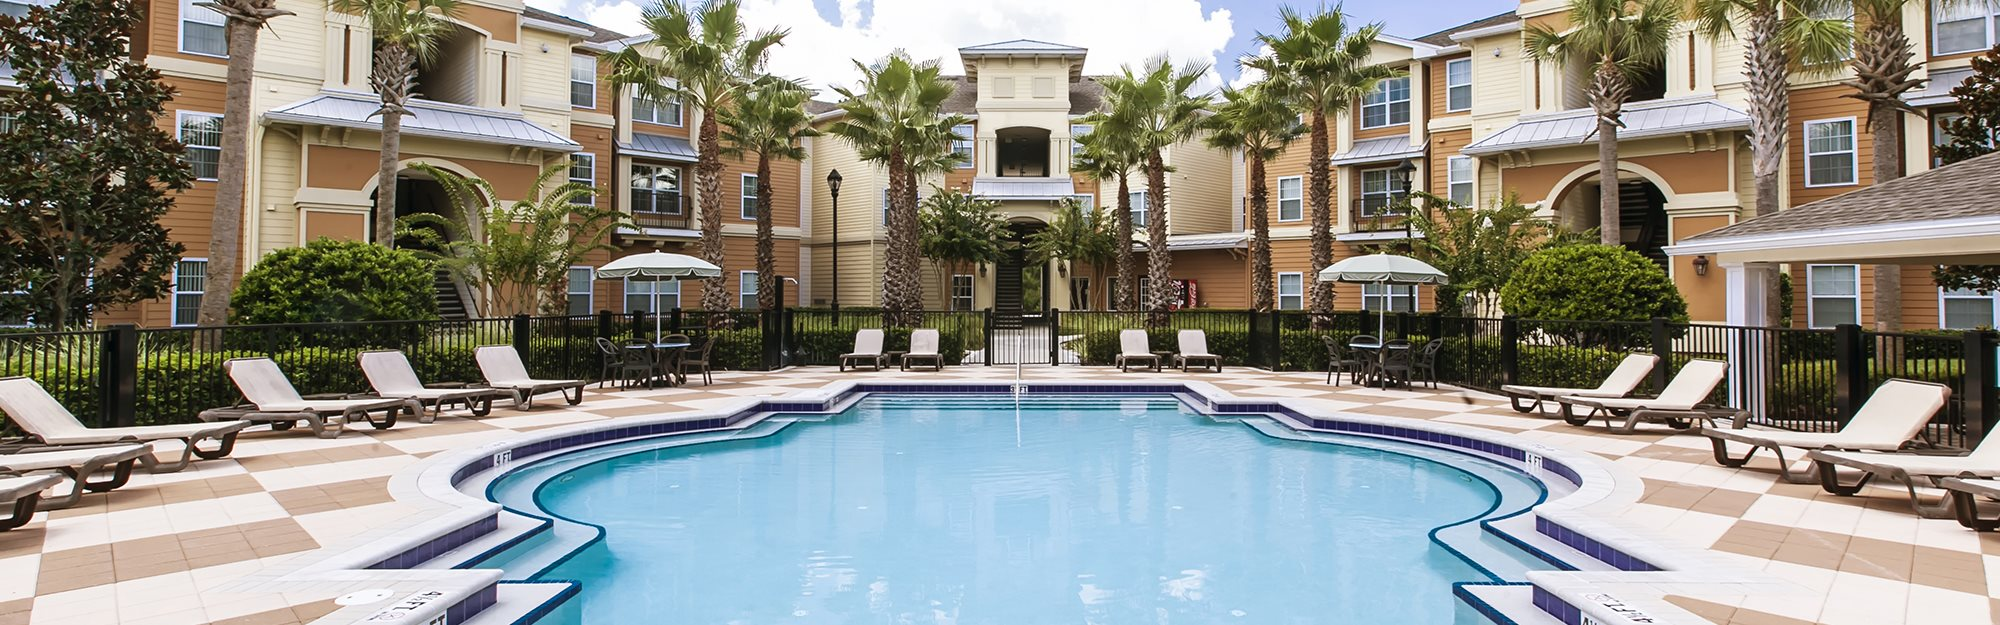 Taylor Place Apartments for rent in Deland, FL. Make this community your new home or visit other Concord Rents communities at ConcordRents.com. Pool